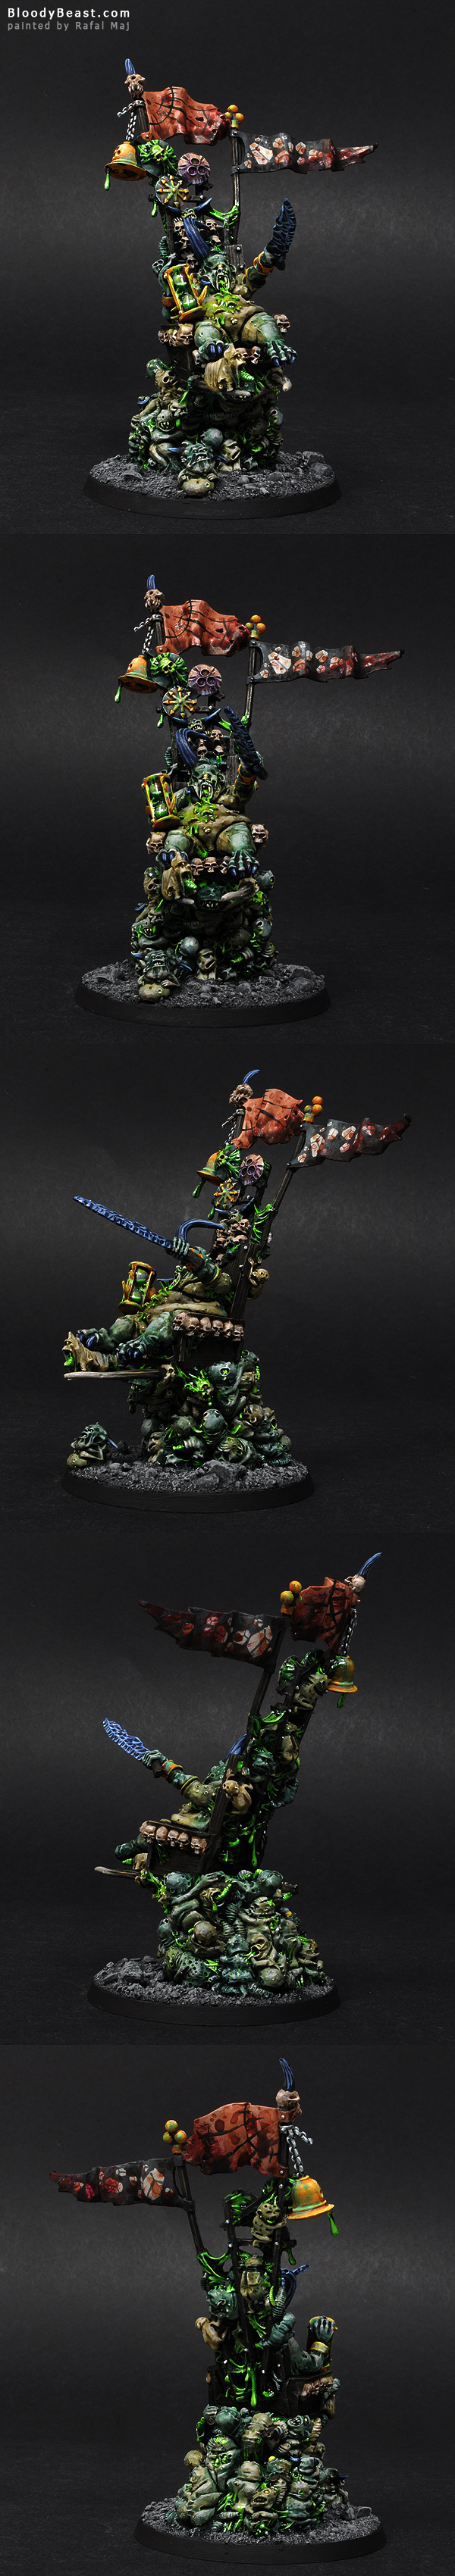 Epidemius painted by Rafal Maj (BloodyBeast.com)